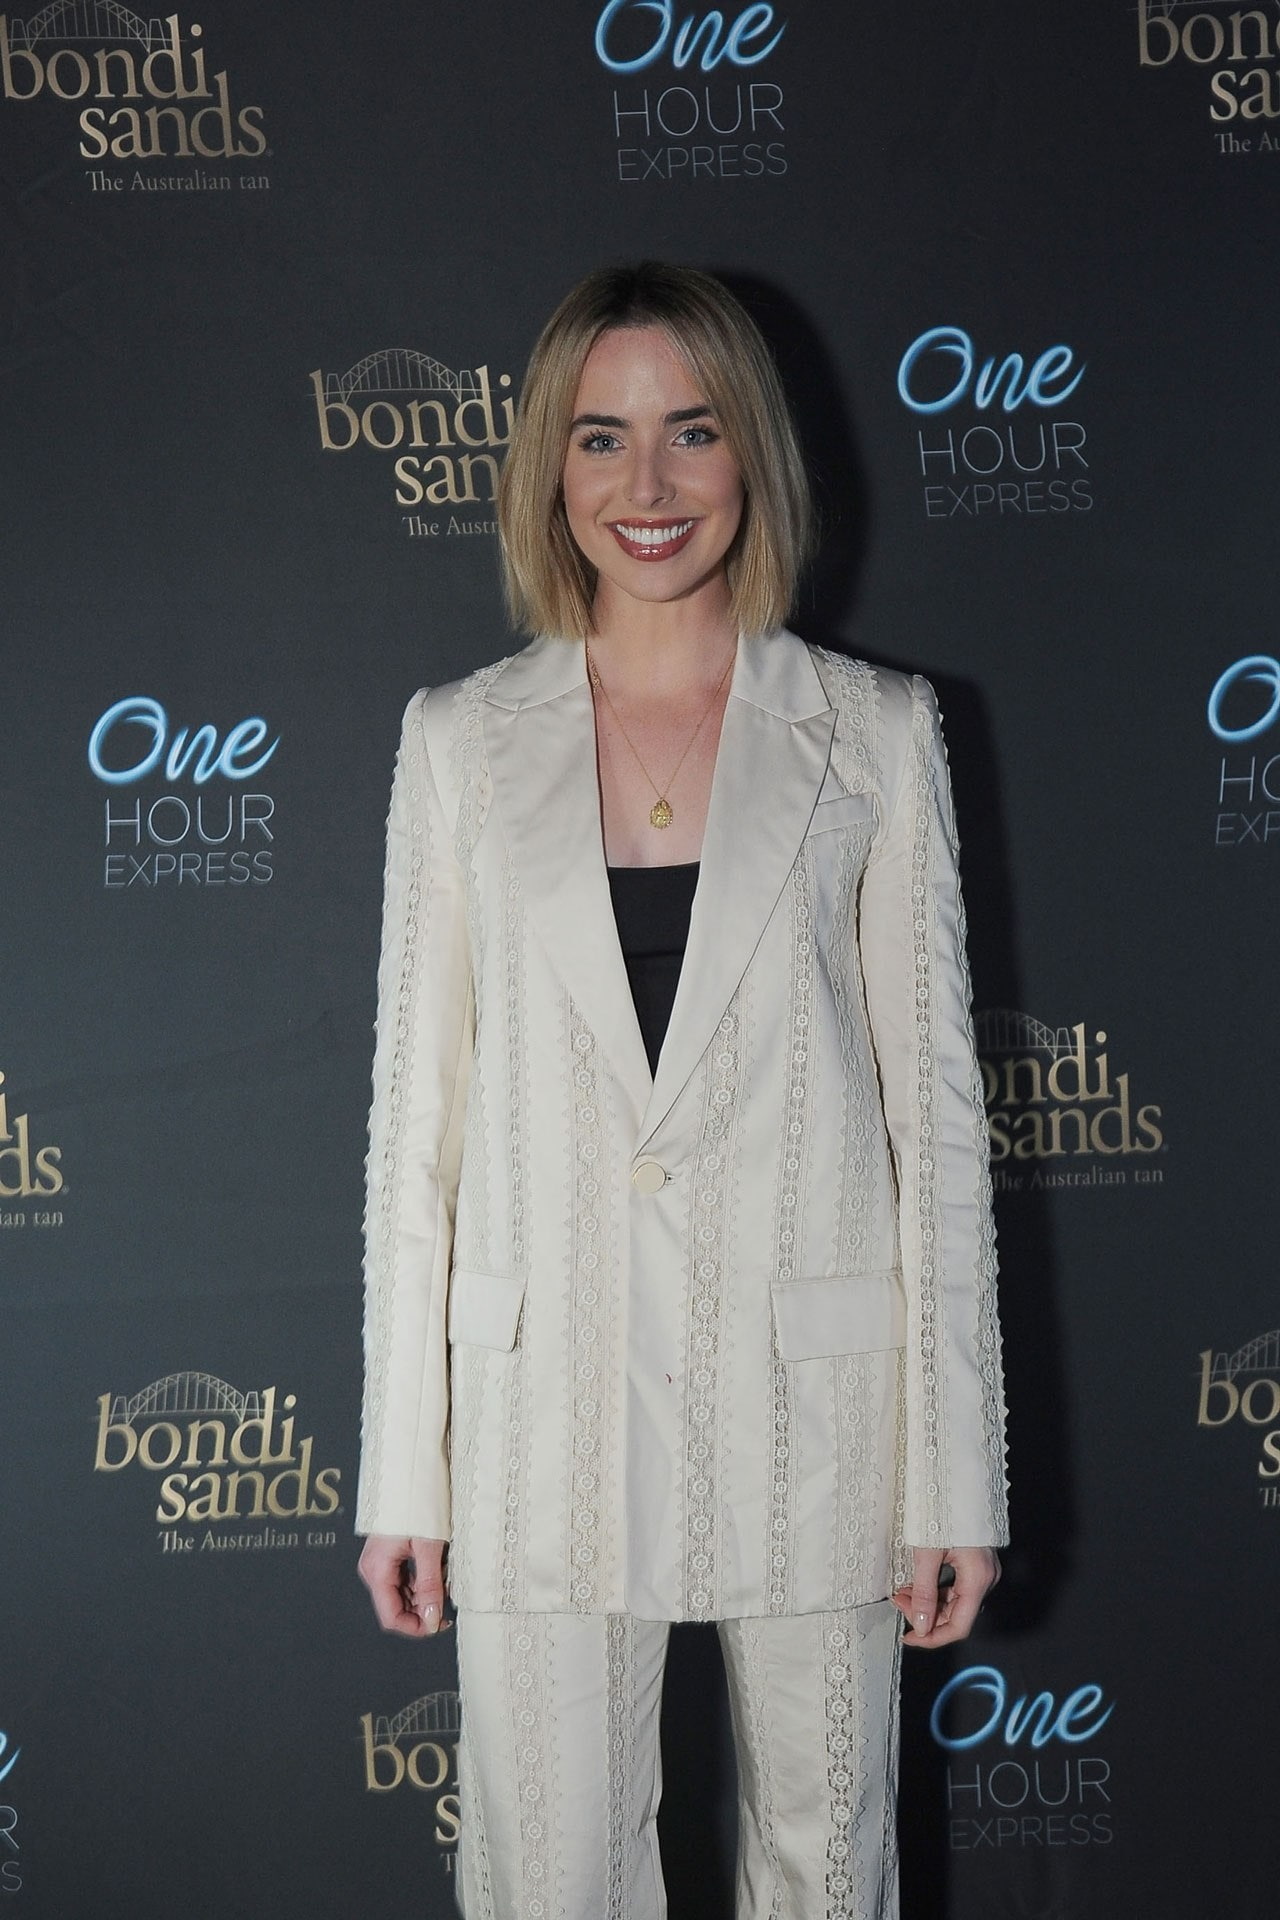 Guests included Ashleigh Brewer (pictured), Stephanie McIntosh and Jason Dundas